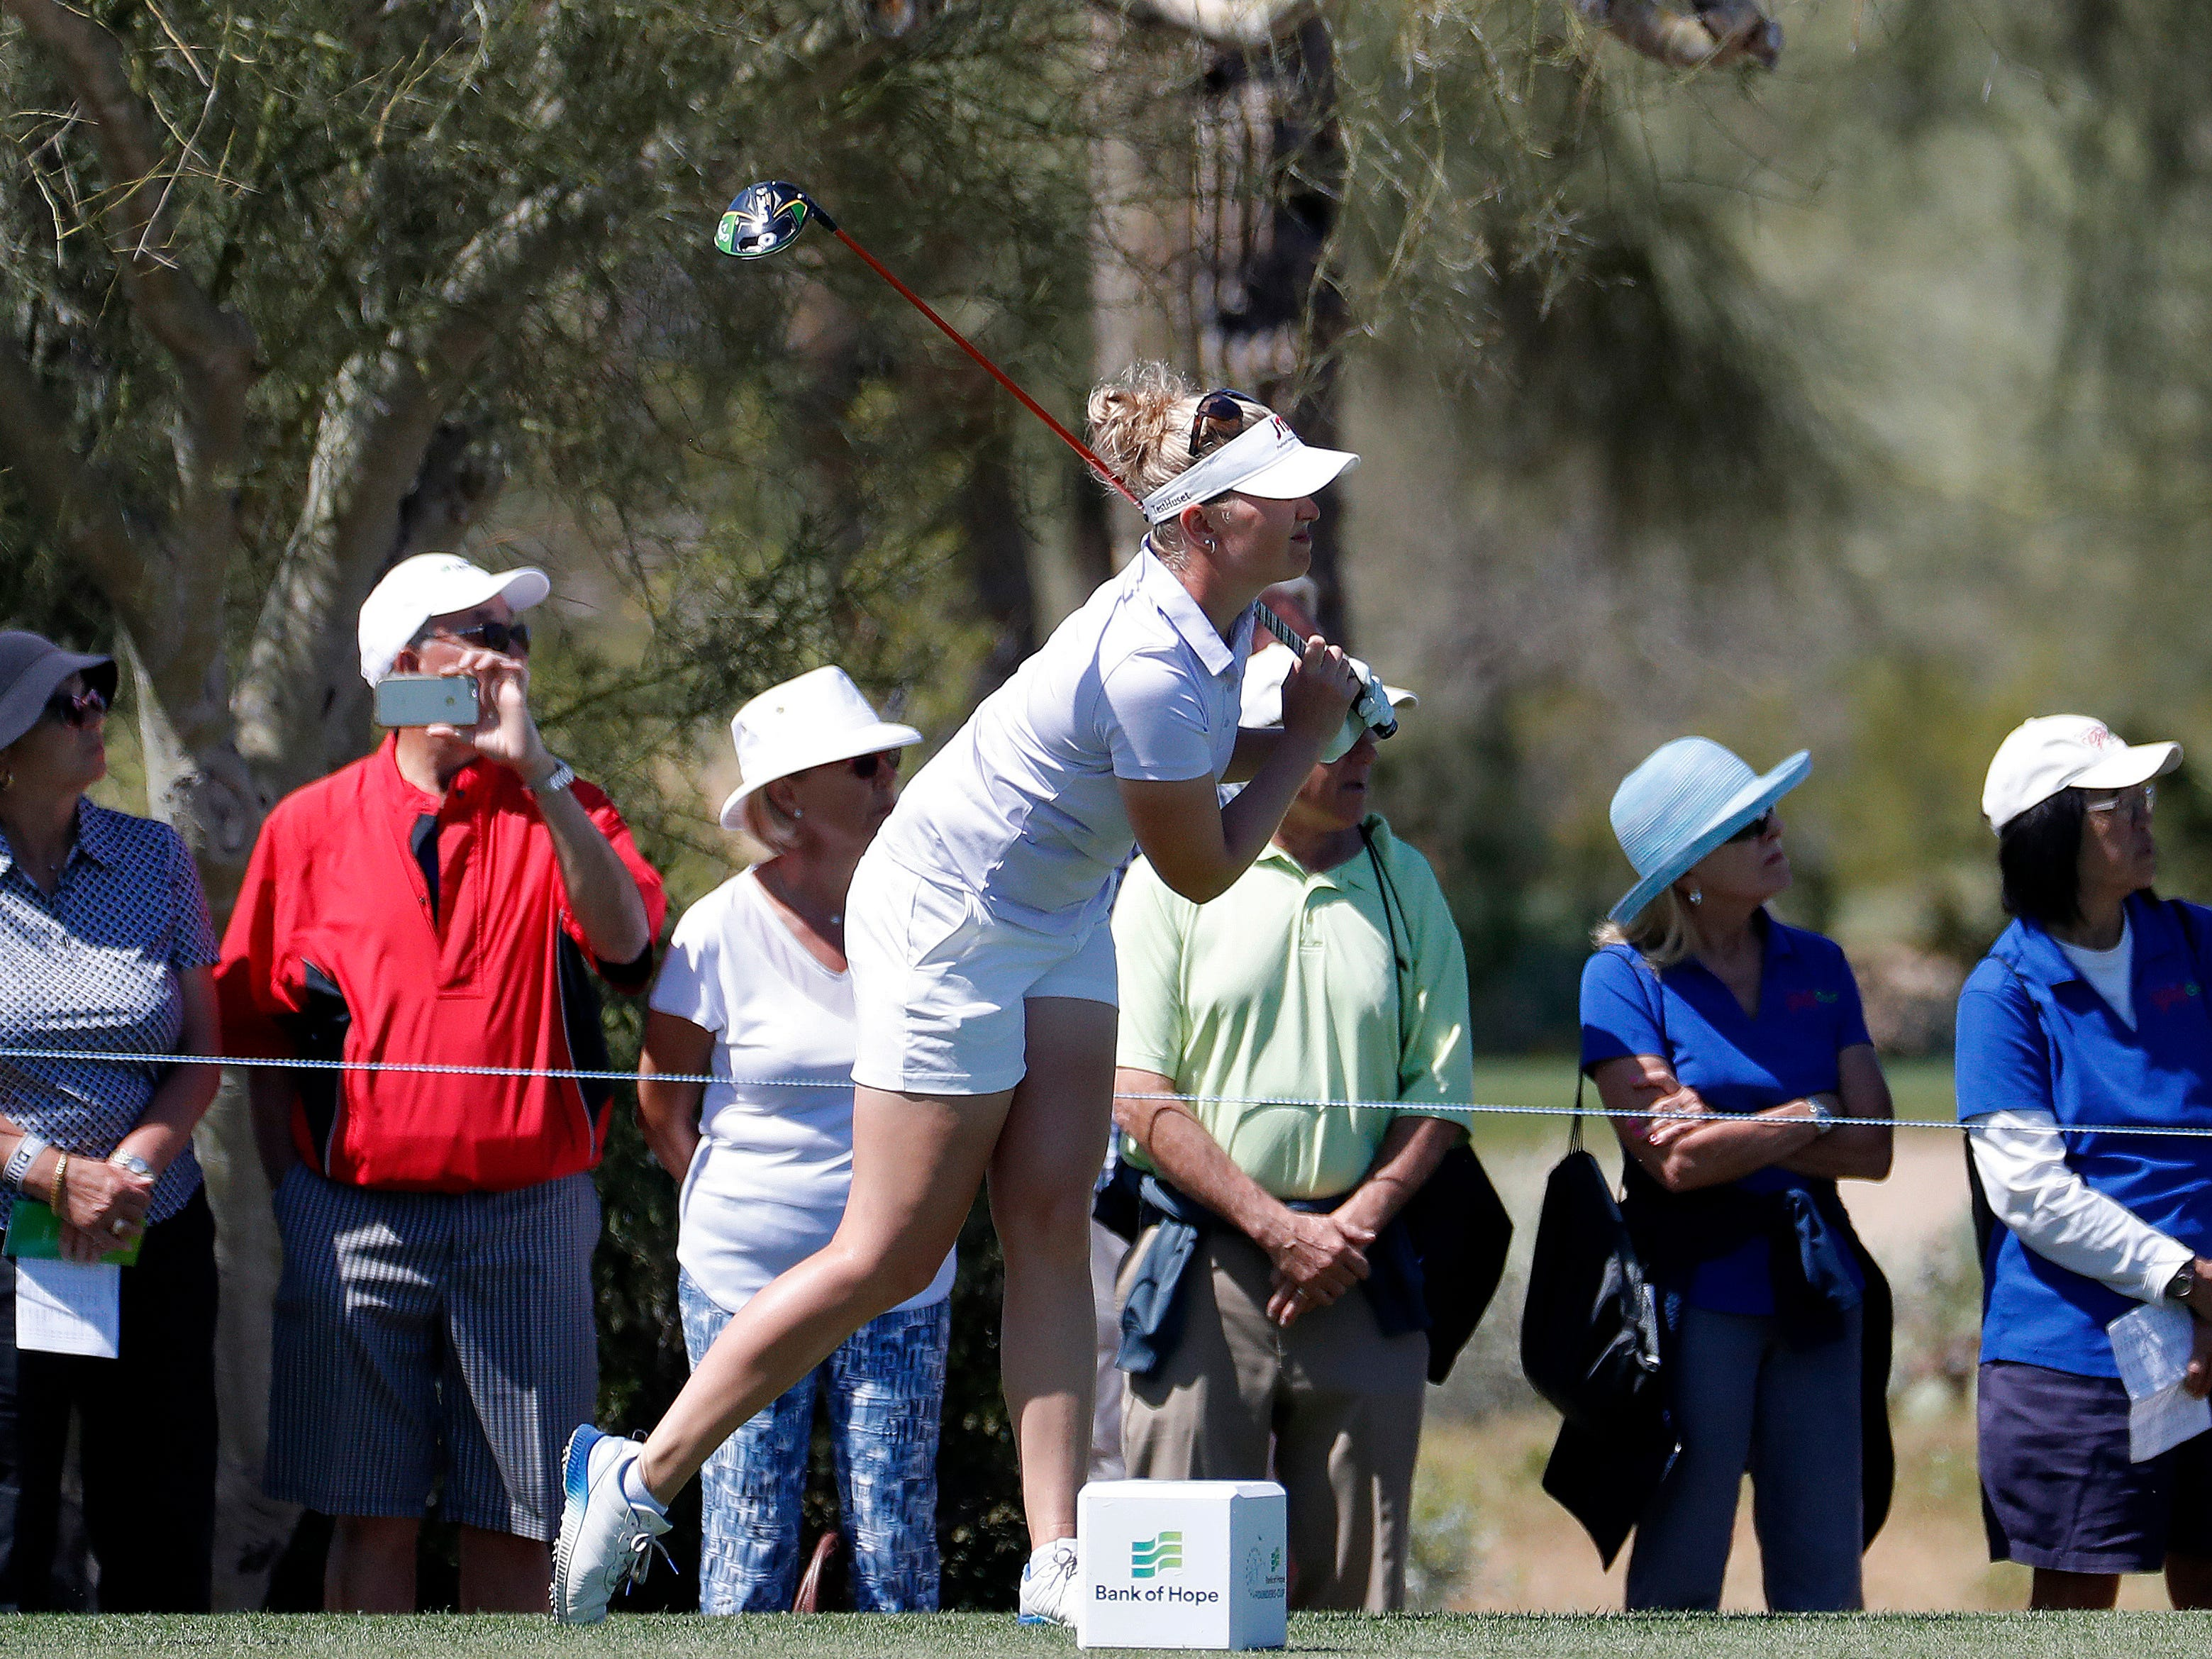 Nanna Koerstz Madsen watches her shot from the second tee during the third round of the Founders Cup LPGA golf tournament, Saturday, March 23, 2019, in Phoenix.